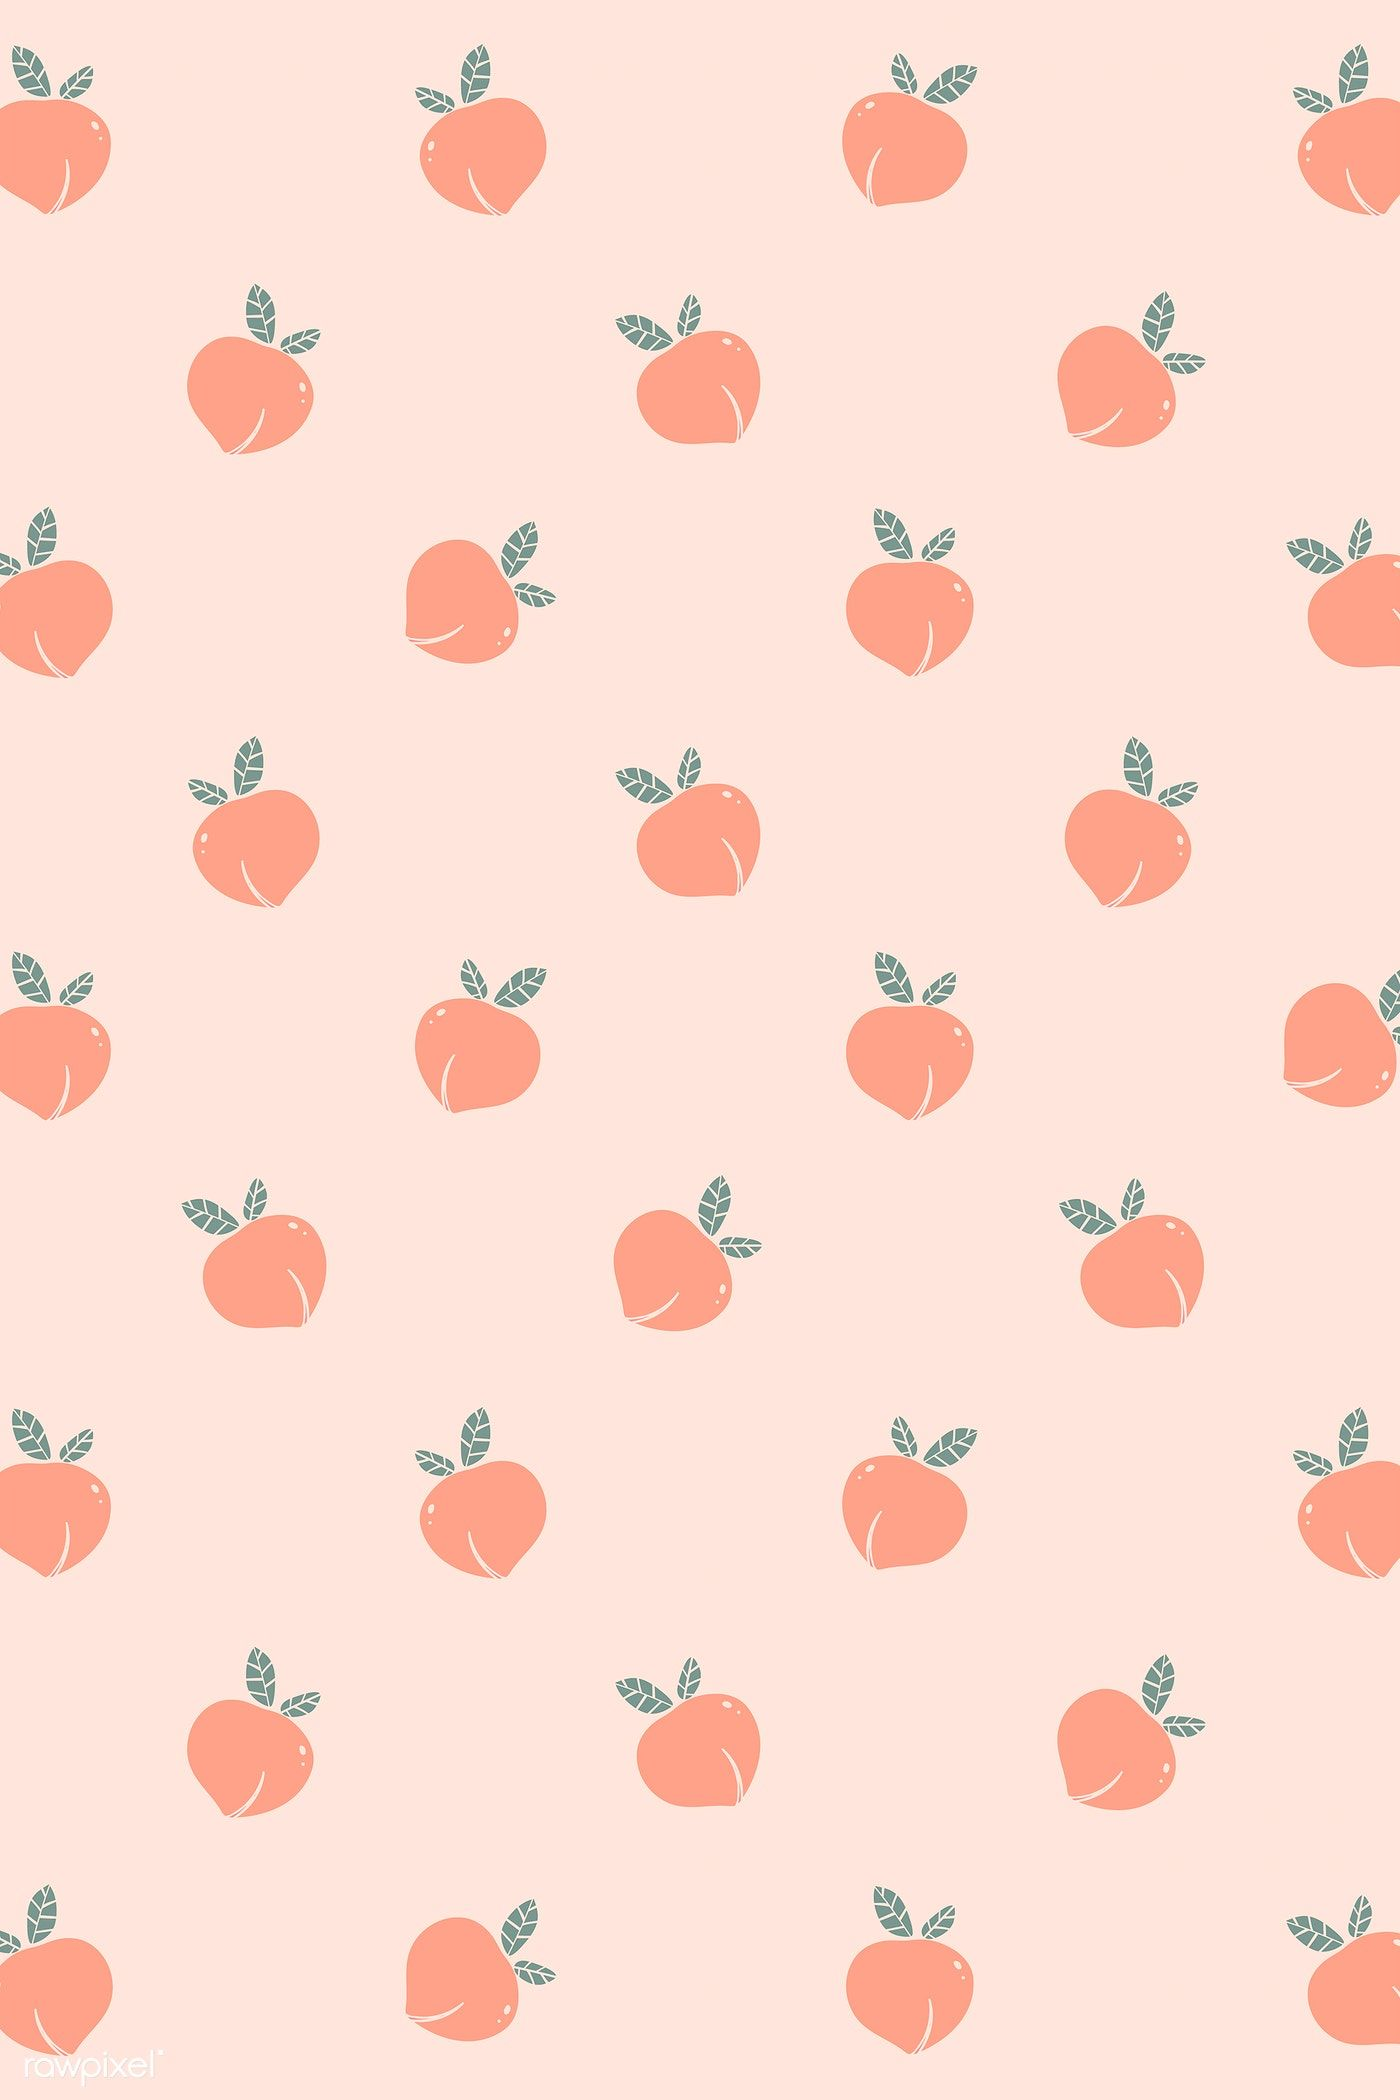 Download Premium Illustration Of Hand Drawn Peach Patterned Background Simple Iphone Wallpaper Peach Wallpaper Cute Wallpapers For Ipad